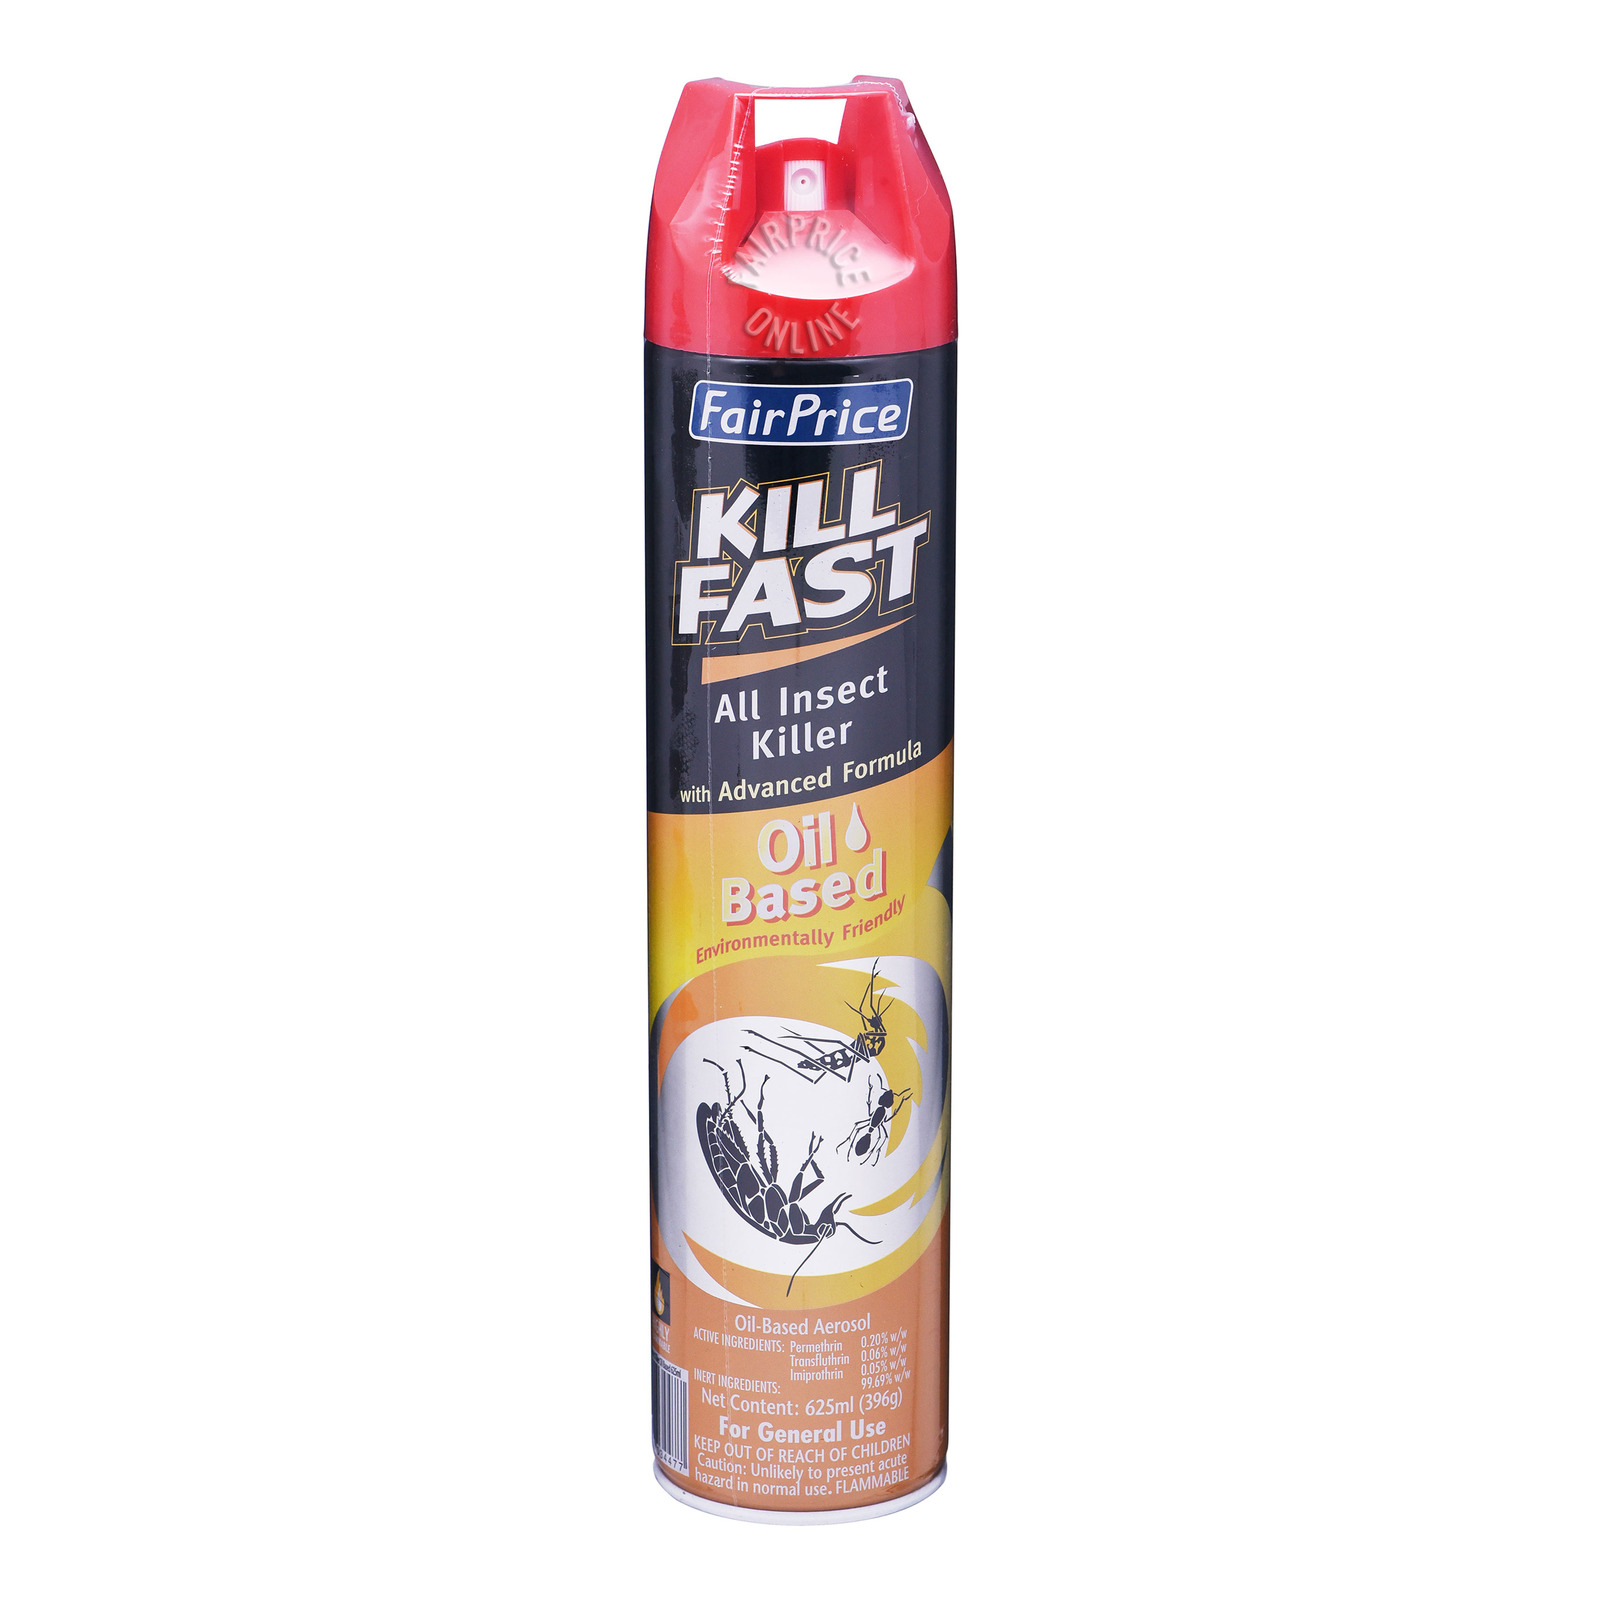 FairPrice Kill Fast All Insect Killer Spray - Oil Based